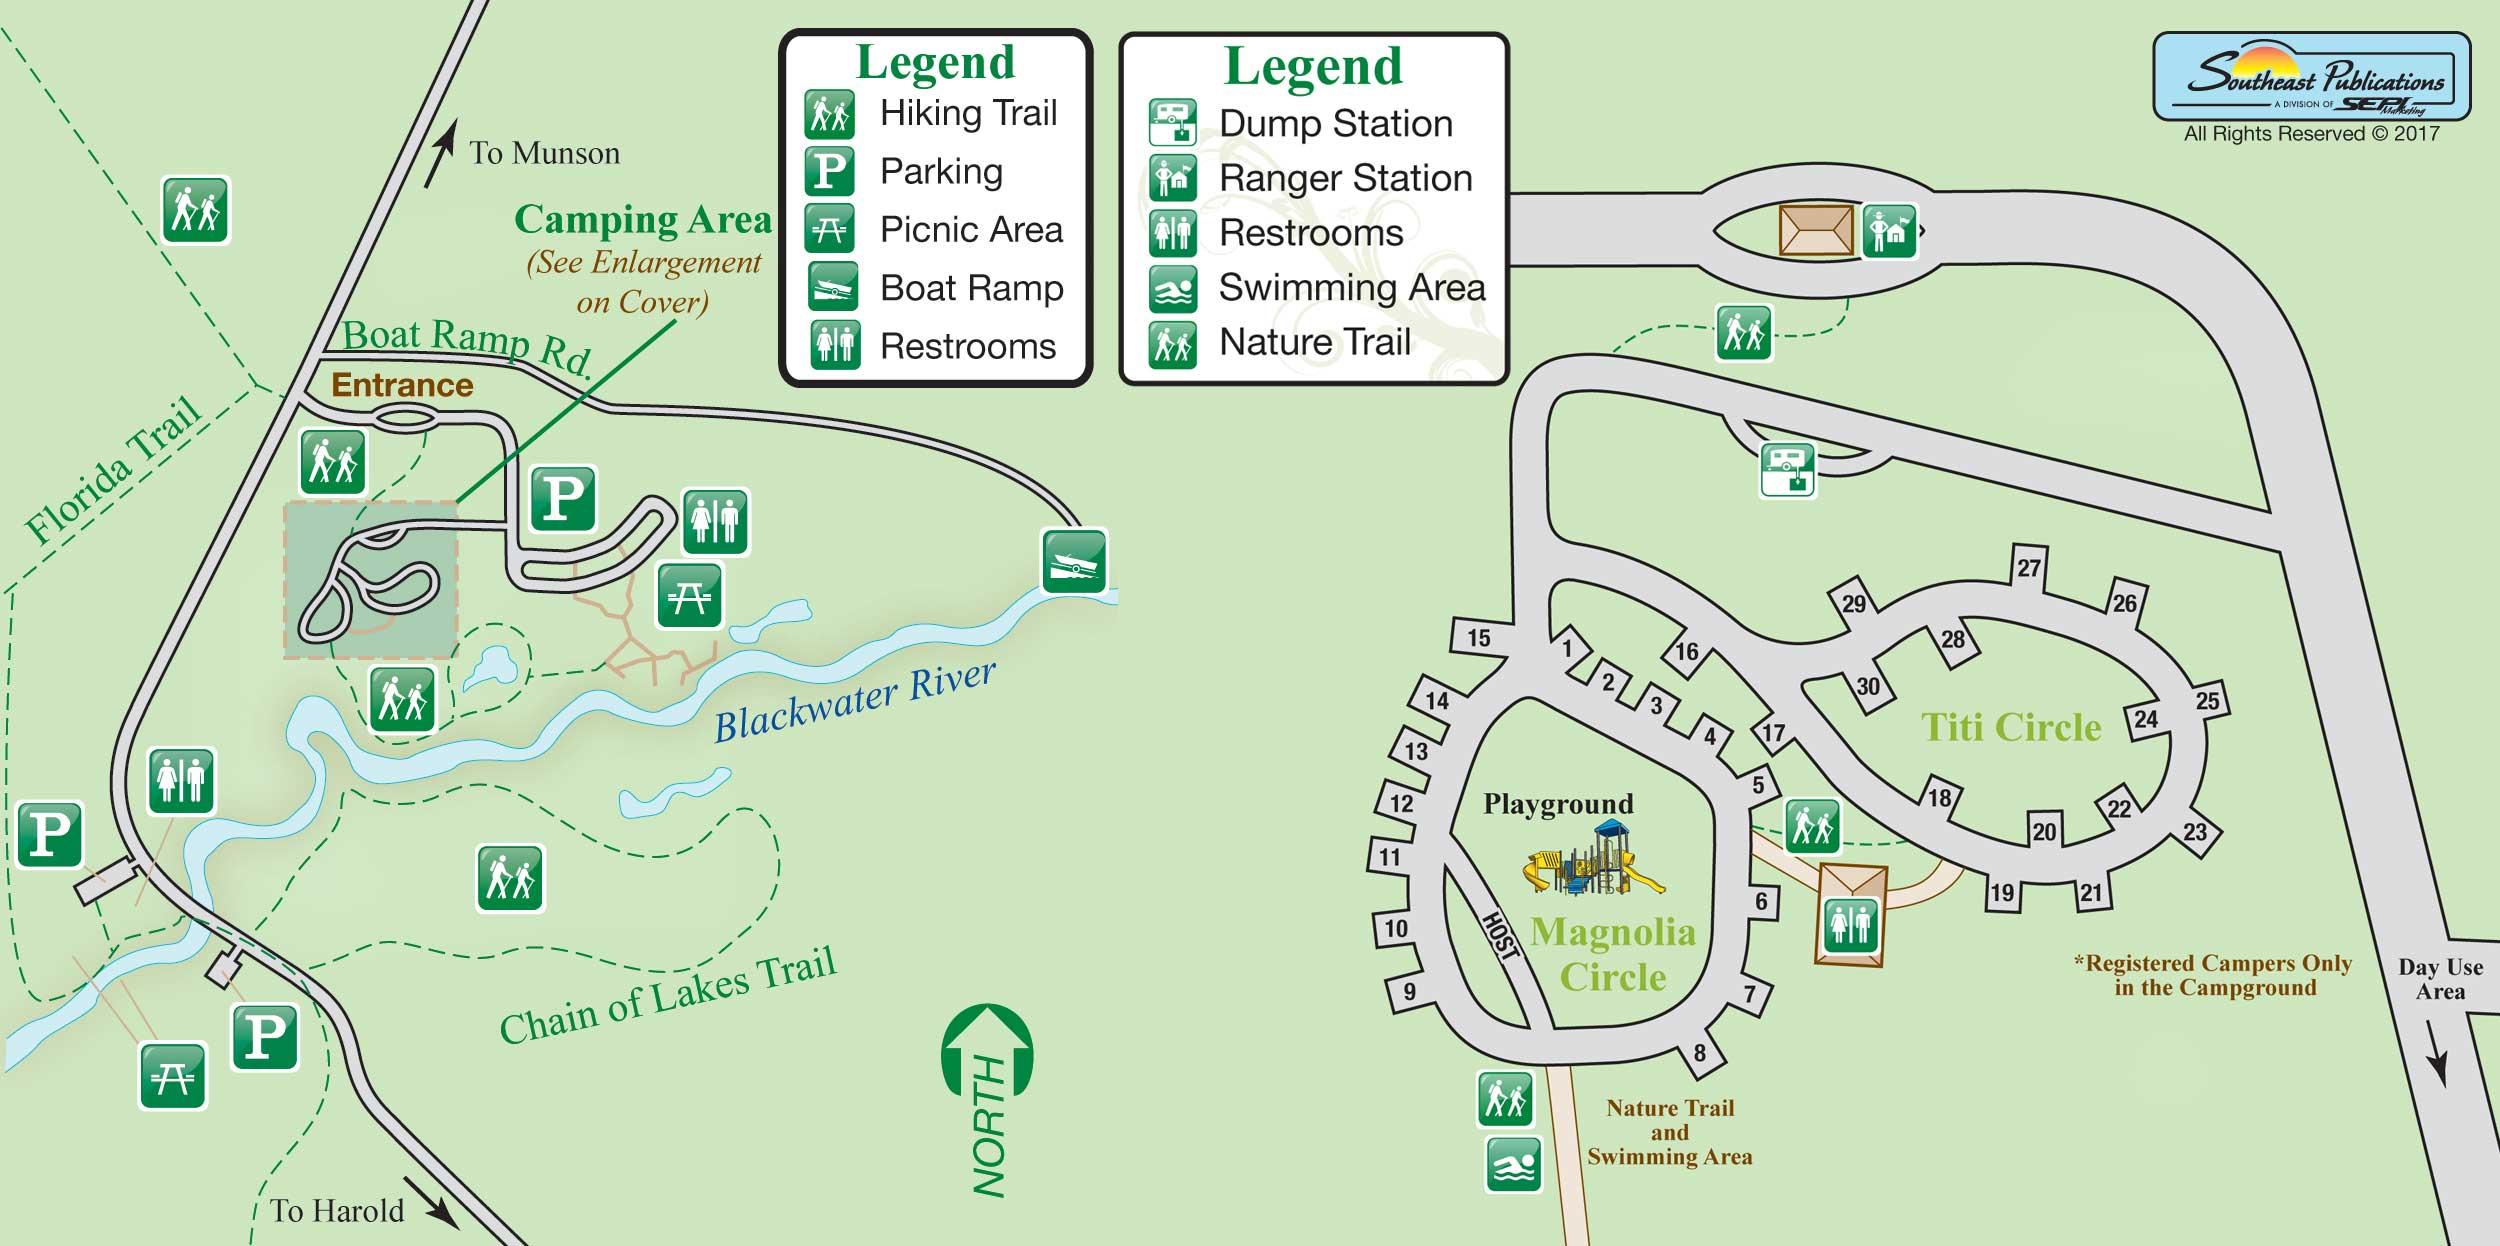 Florida State Parks Rv Camping - Know Your Campground - Florida State Parks Map